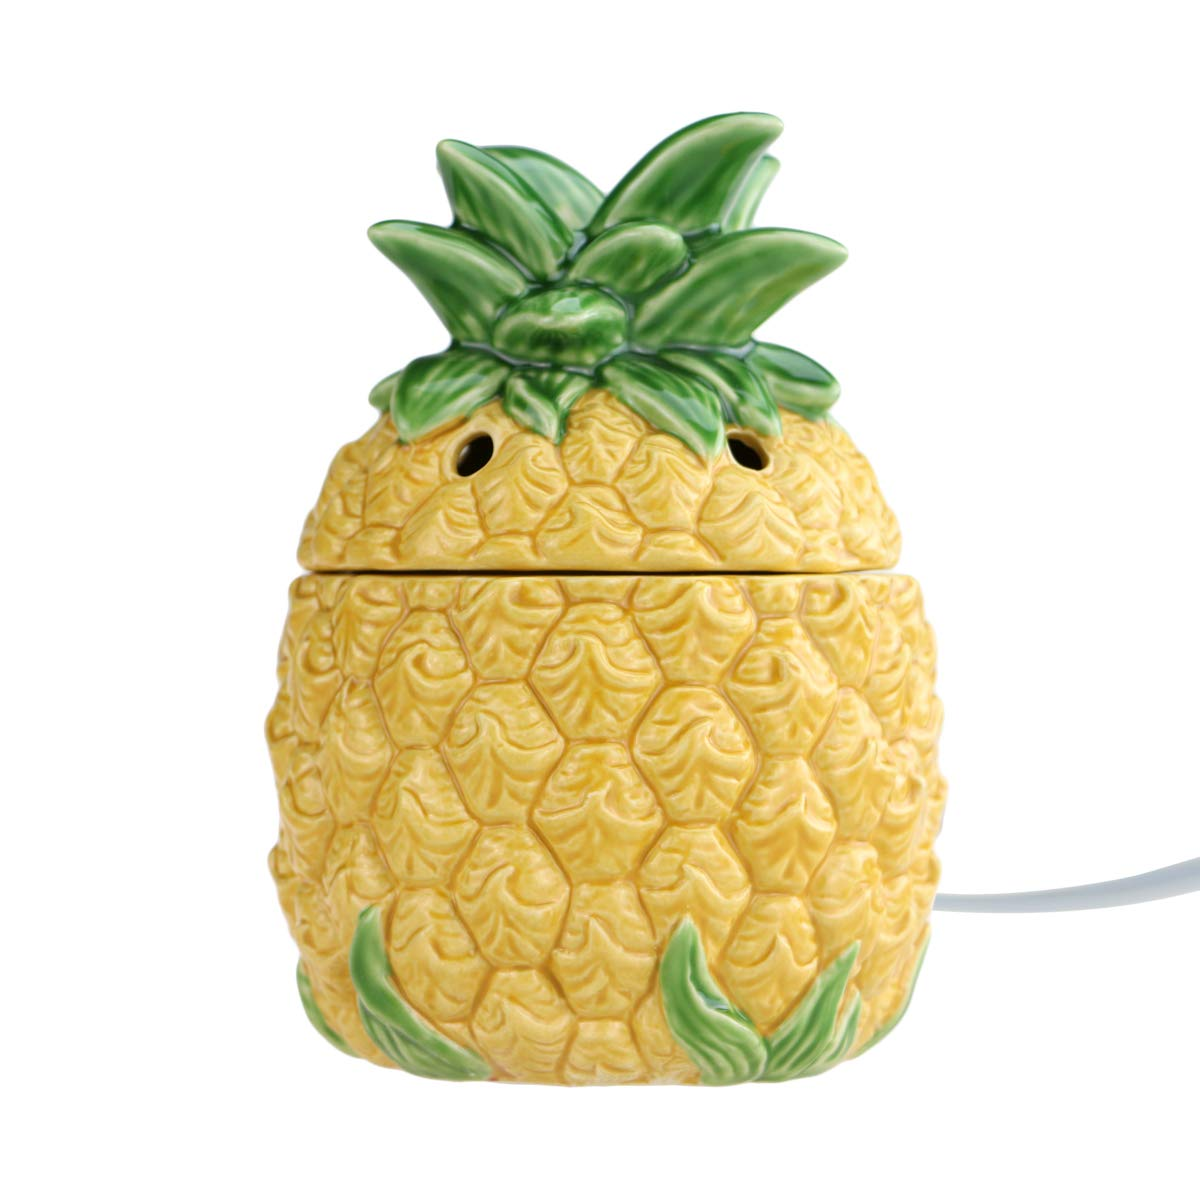 STAR MOON Wax Melt Warmer Electric, Candle Warmer for Wax Melt, Home Fragrance Diffuser, Home Décor, No Flame, with Ceramic Warming Plate (Pineapple) by STAR MOON (Image #1)